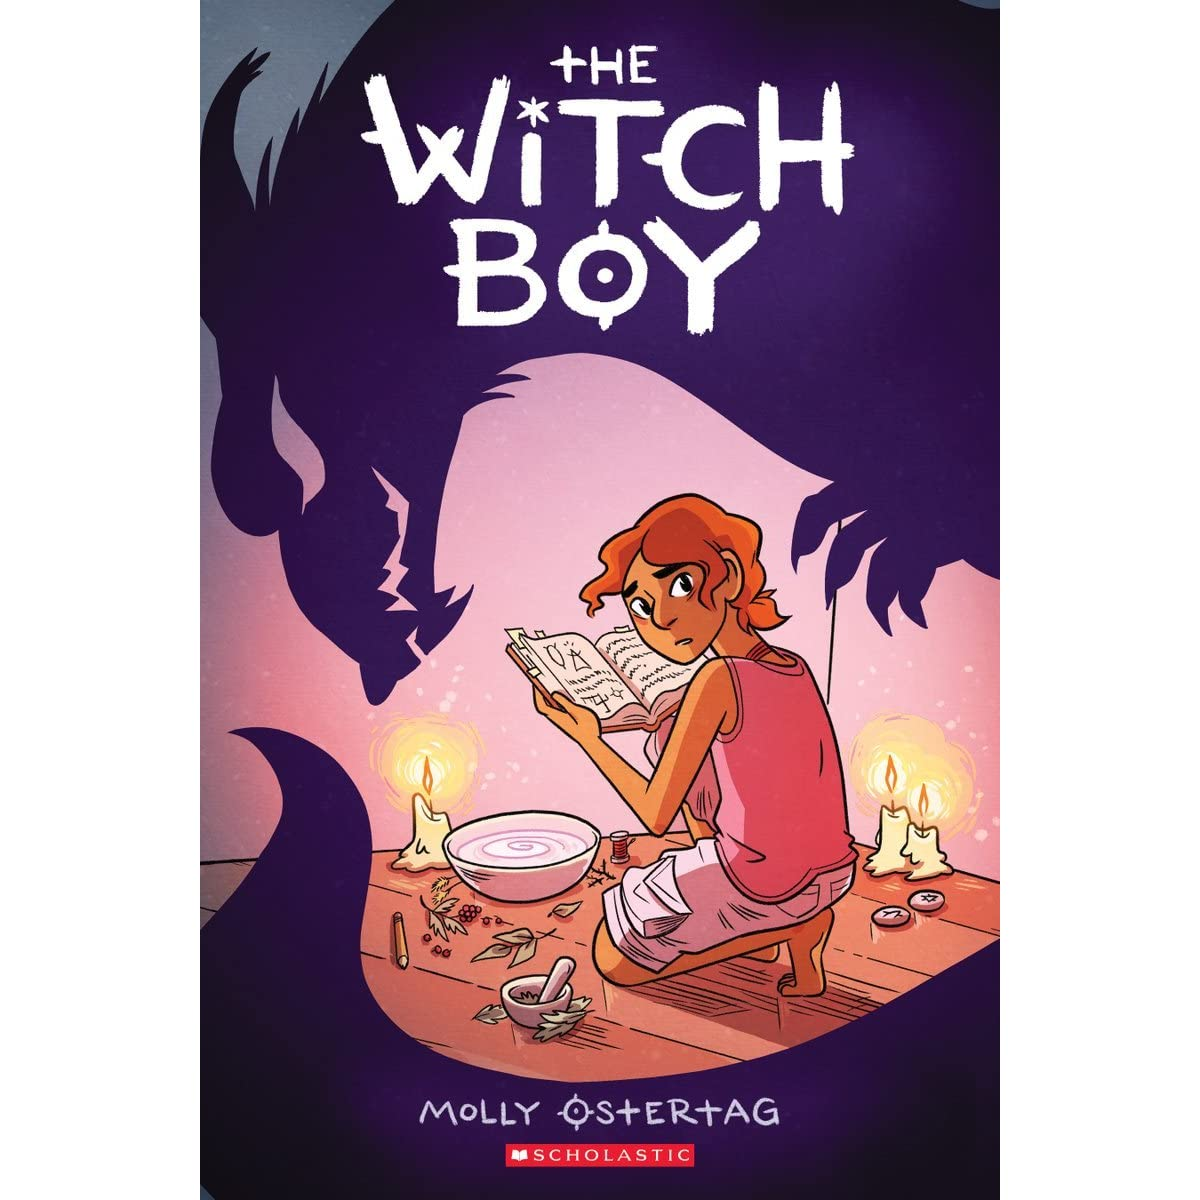 The Witch Boy (The Witch Boy, #1) by Molly Ostertag